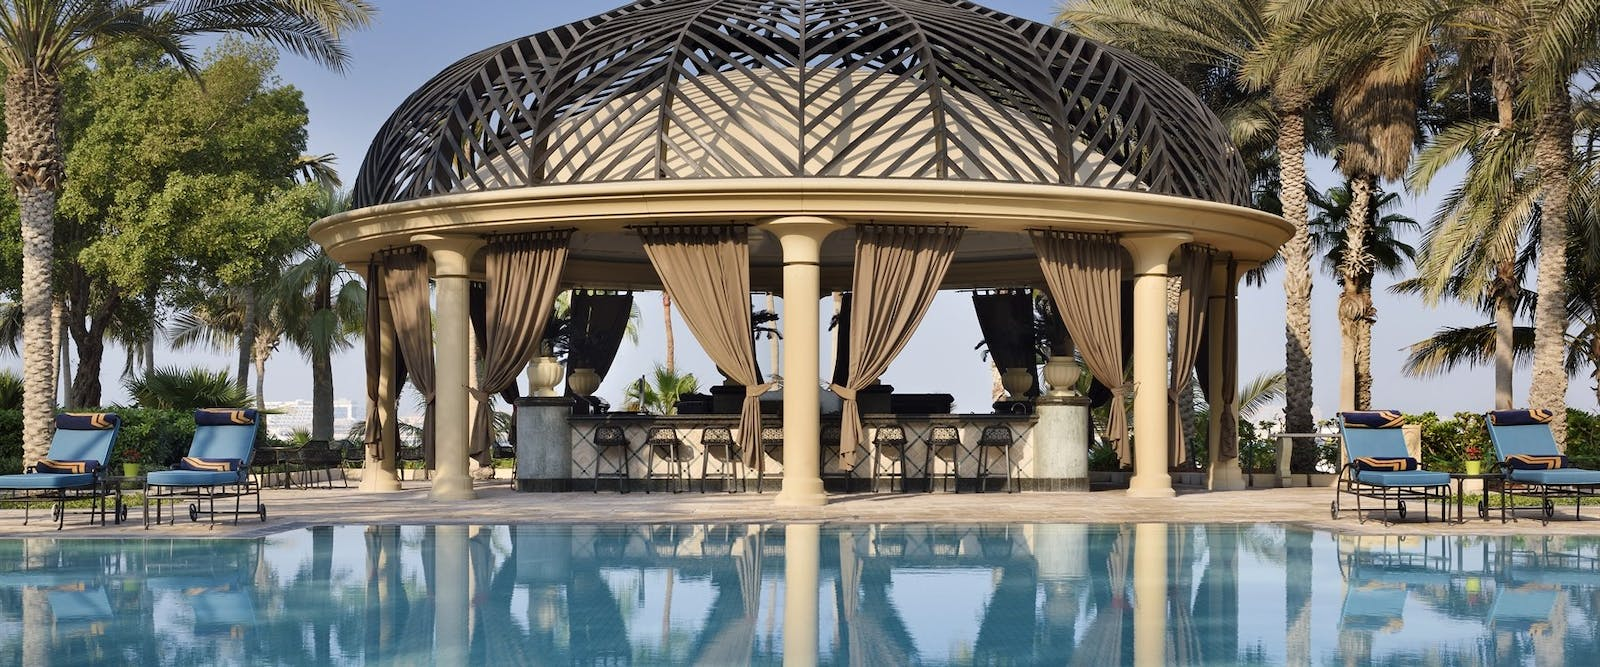 Grand Pool at One&Only Royal Mirage - The Palace, Dubai